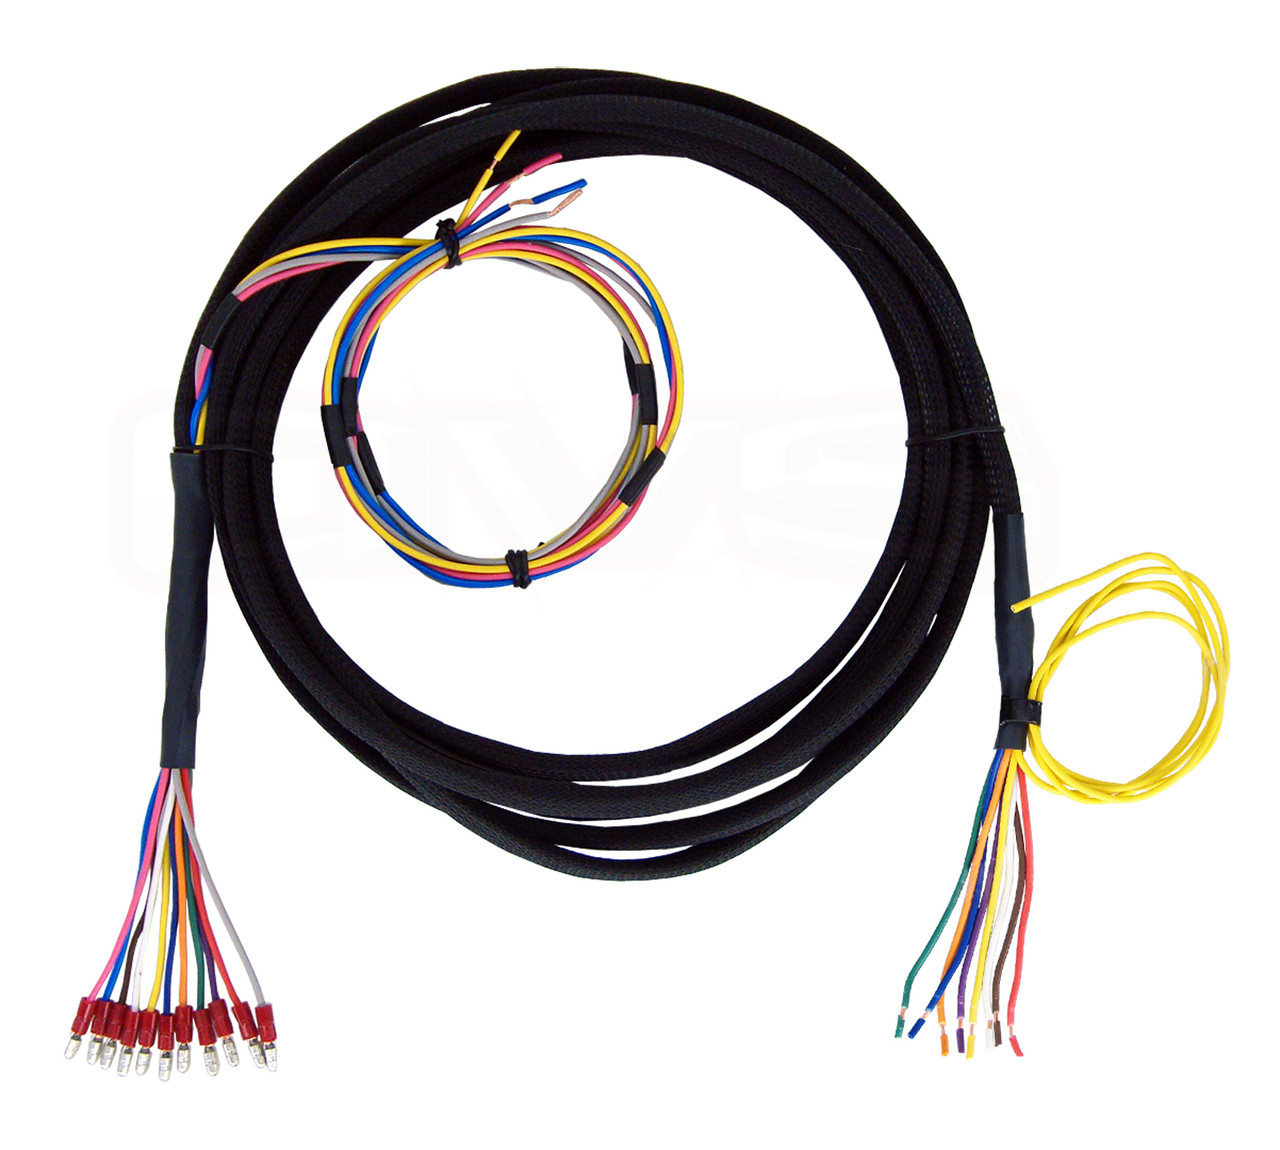 medium resolution of avs valve wiring harness 10 15 20 universal to avs 7 switch rh avsontheweb com 7 wire trailer wiring harness 4 plug wiring harness diagram